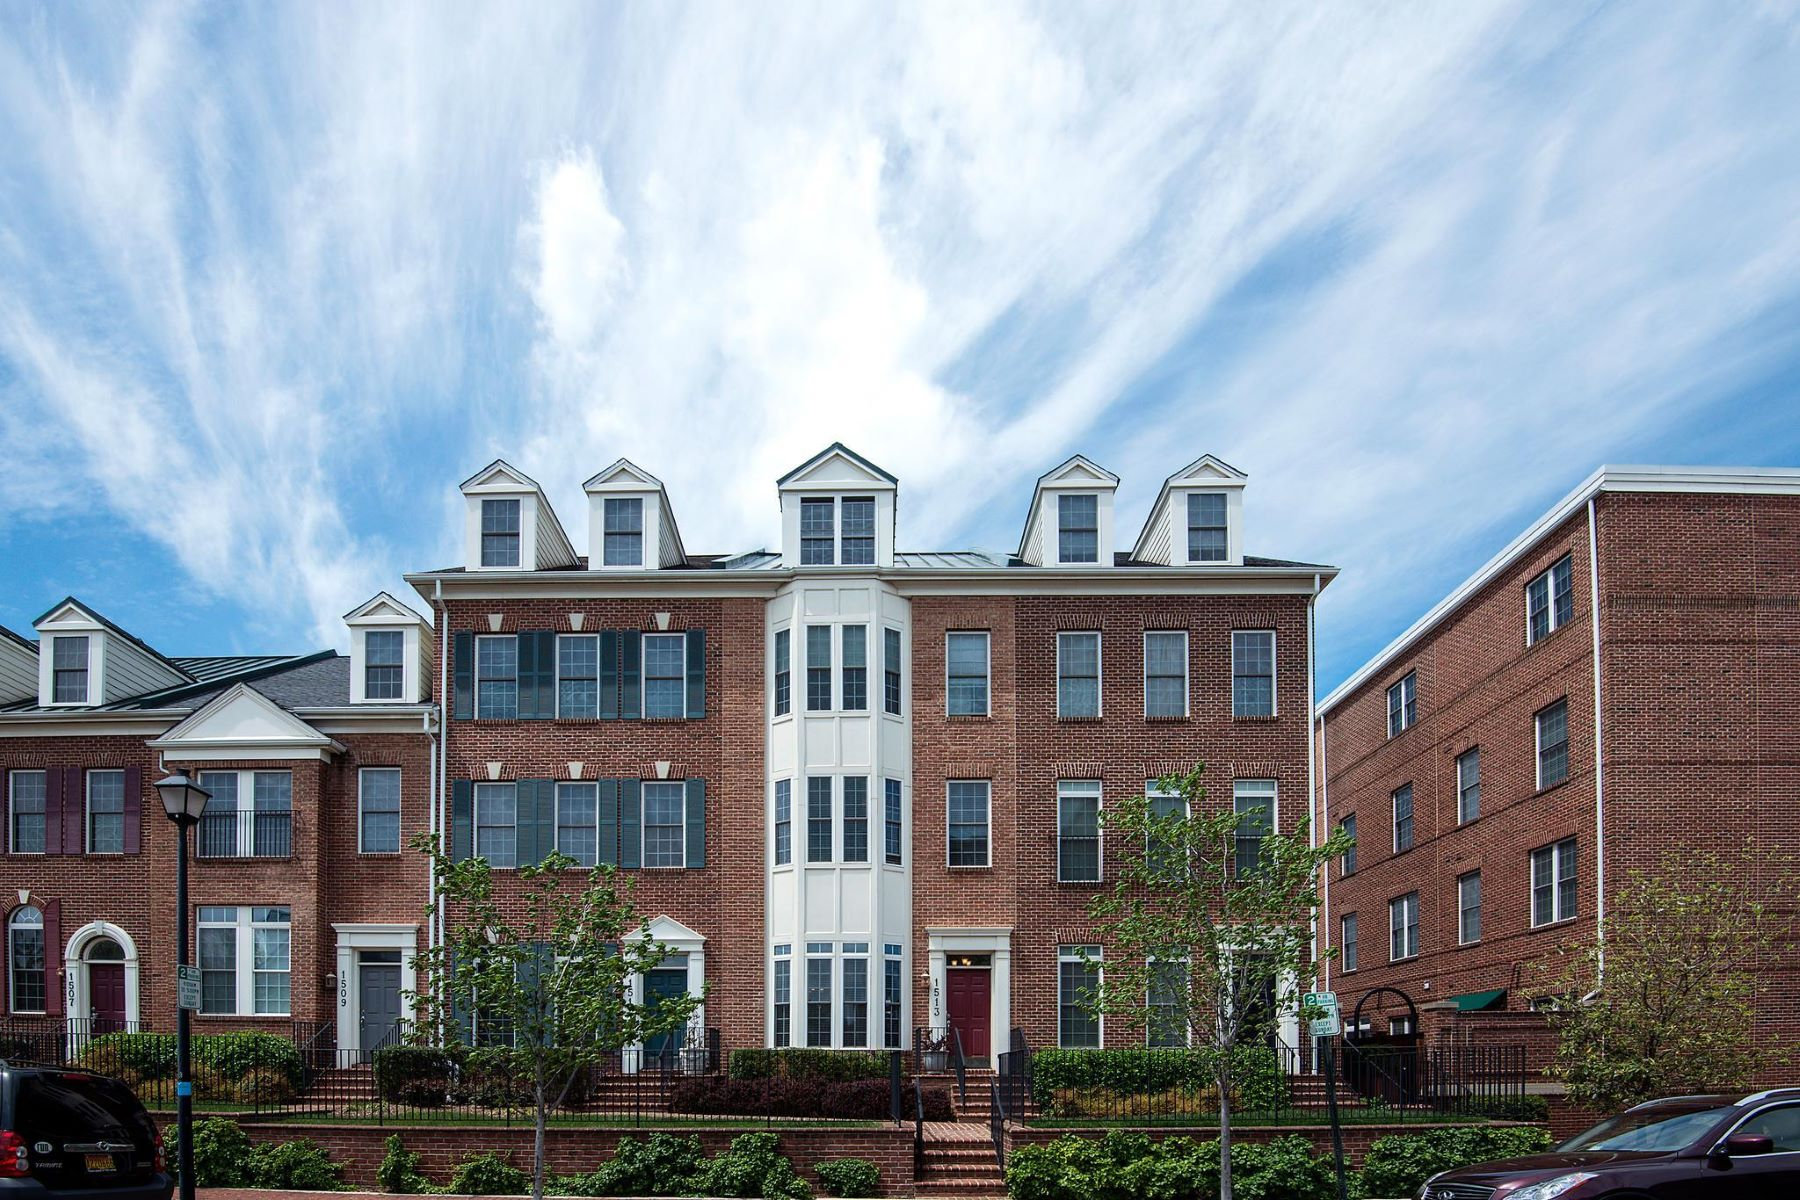 Condominium for Rent at 1513 Portner Rd 1513 Portner Rd Alexandria, Virginia 22314 United States